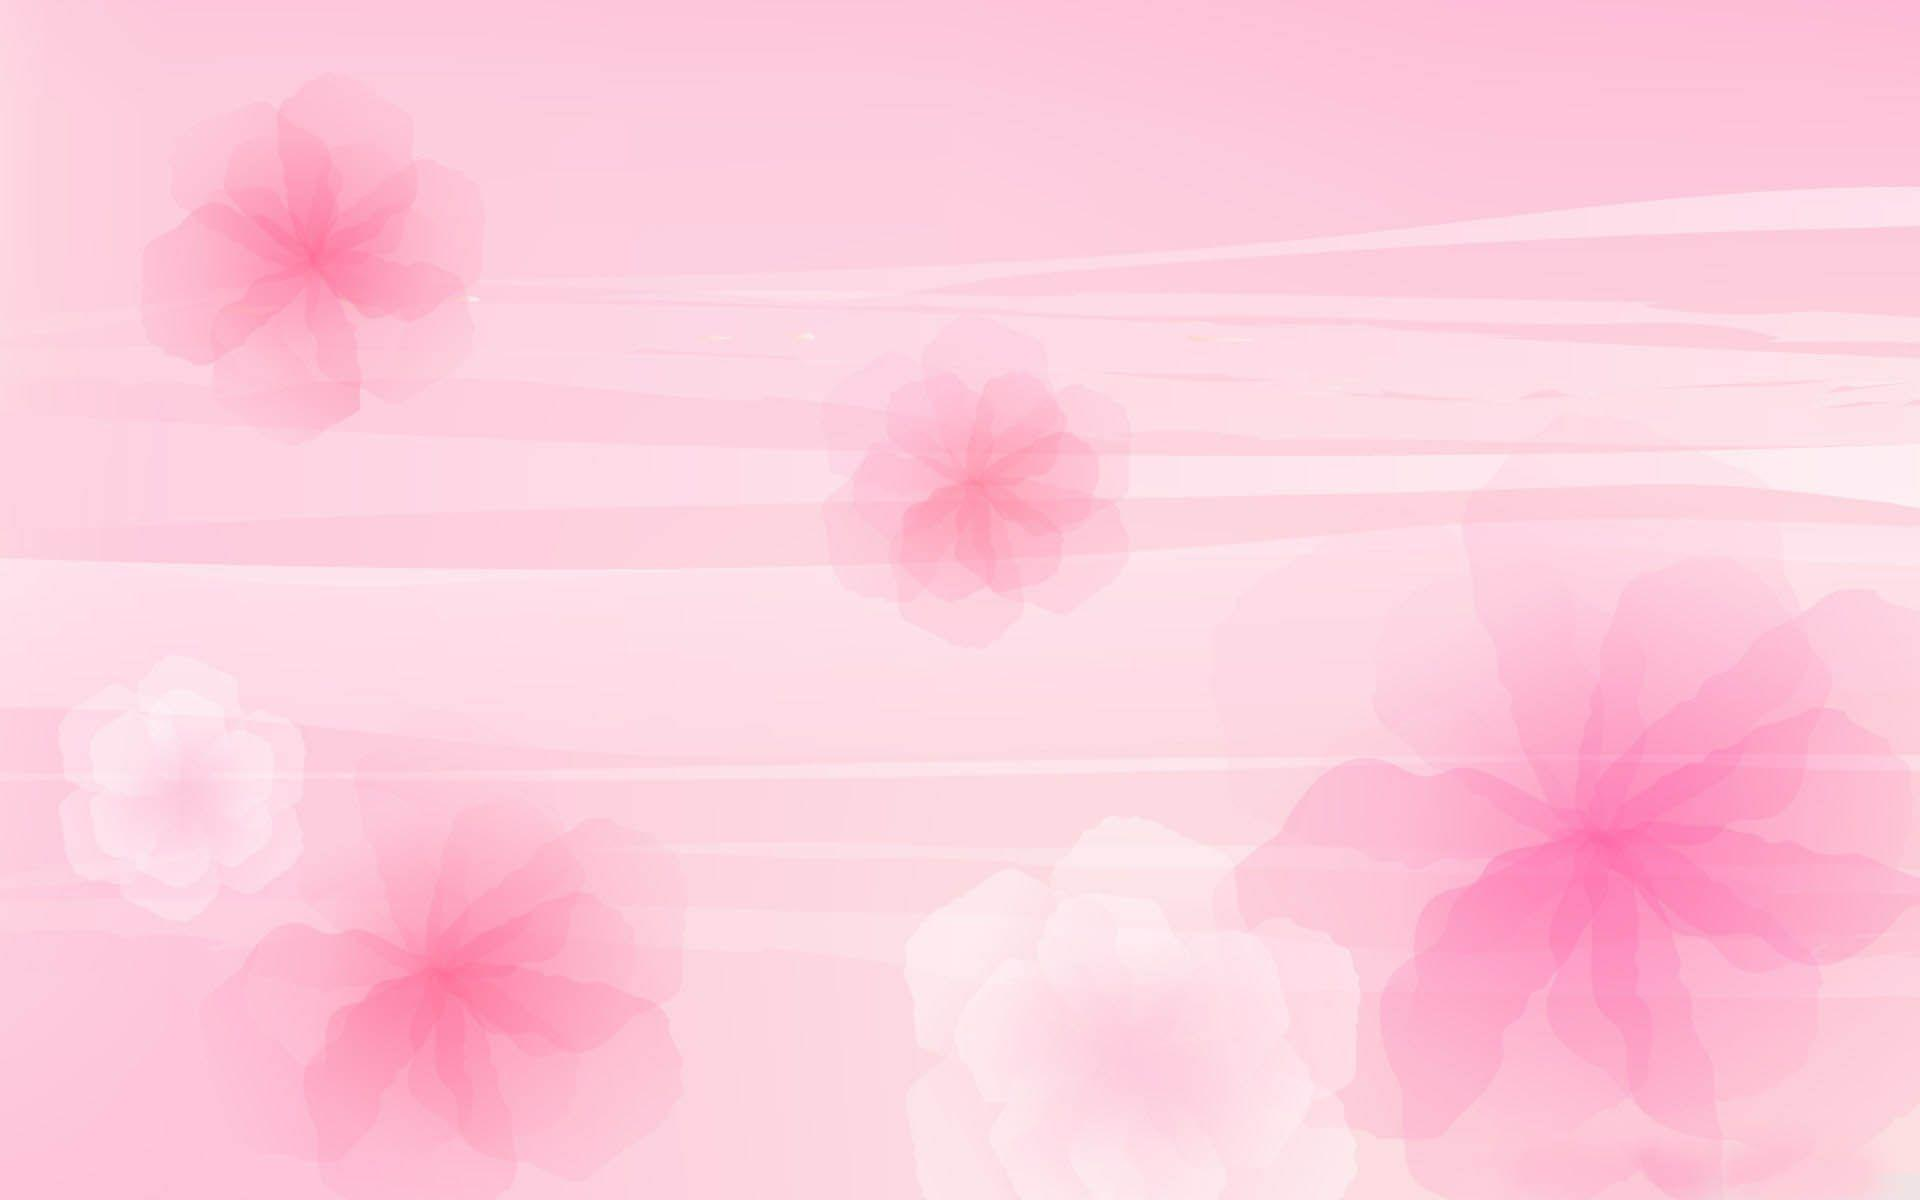 Free Download Light Pink Flower Wallpapers 1920x1200 For Your